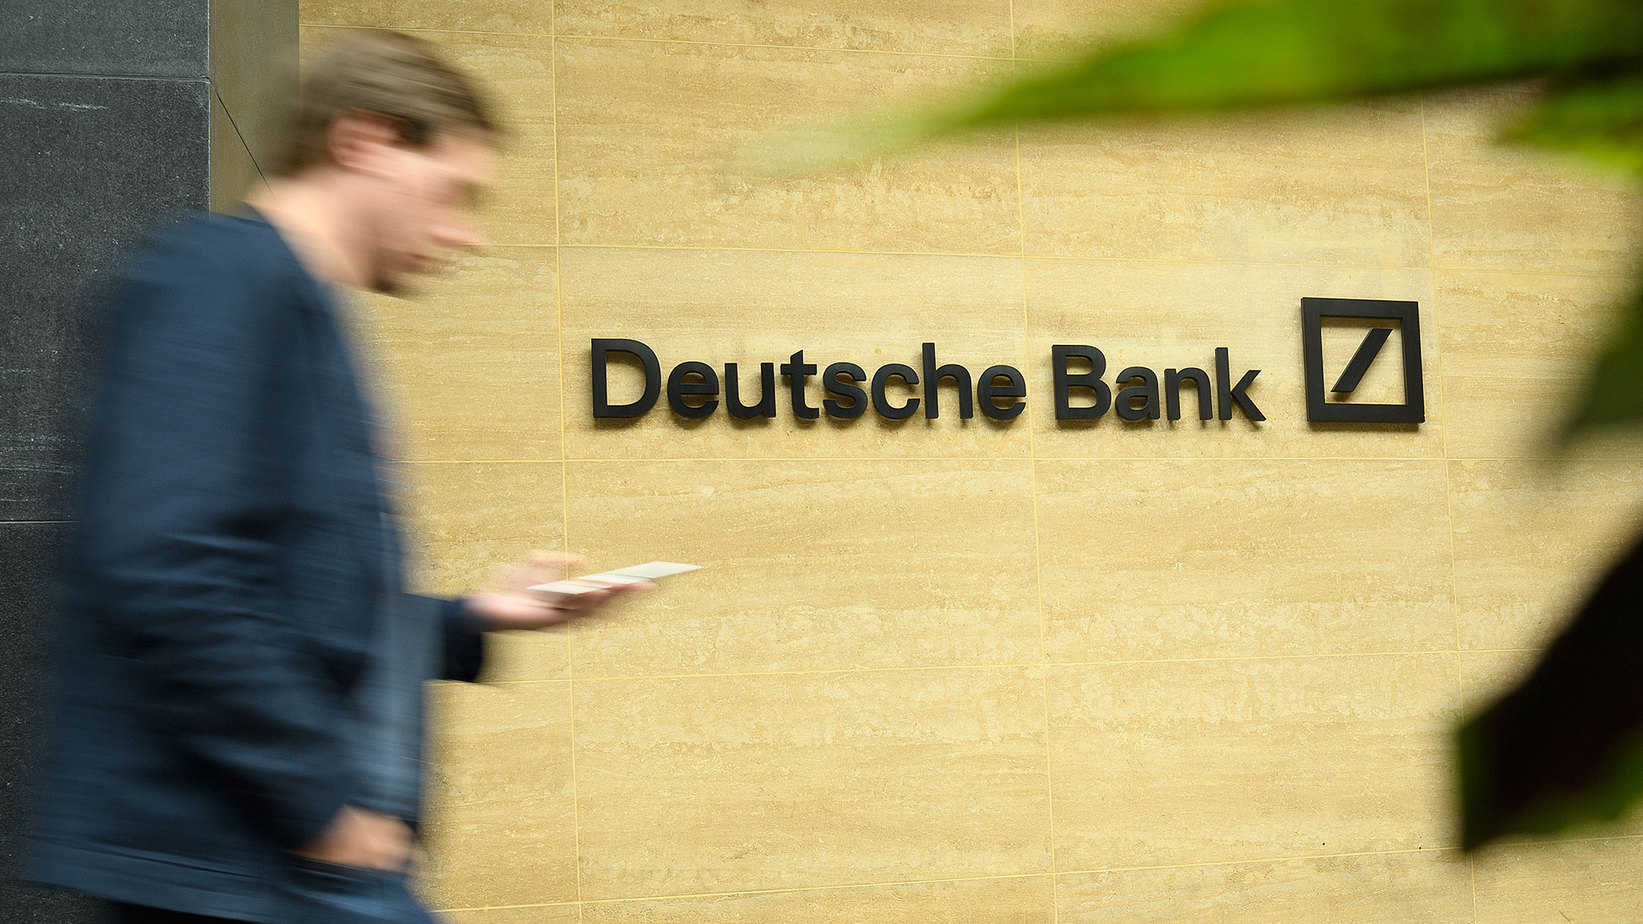 Deutsche Bank Ownership